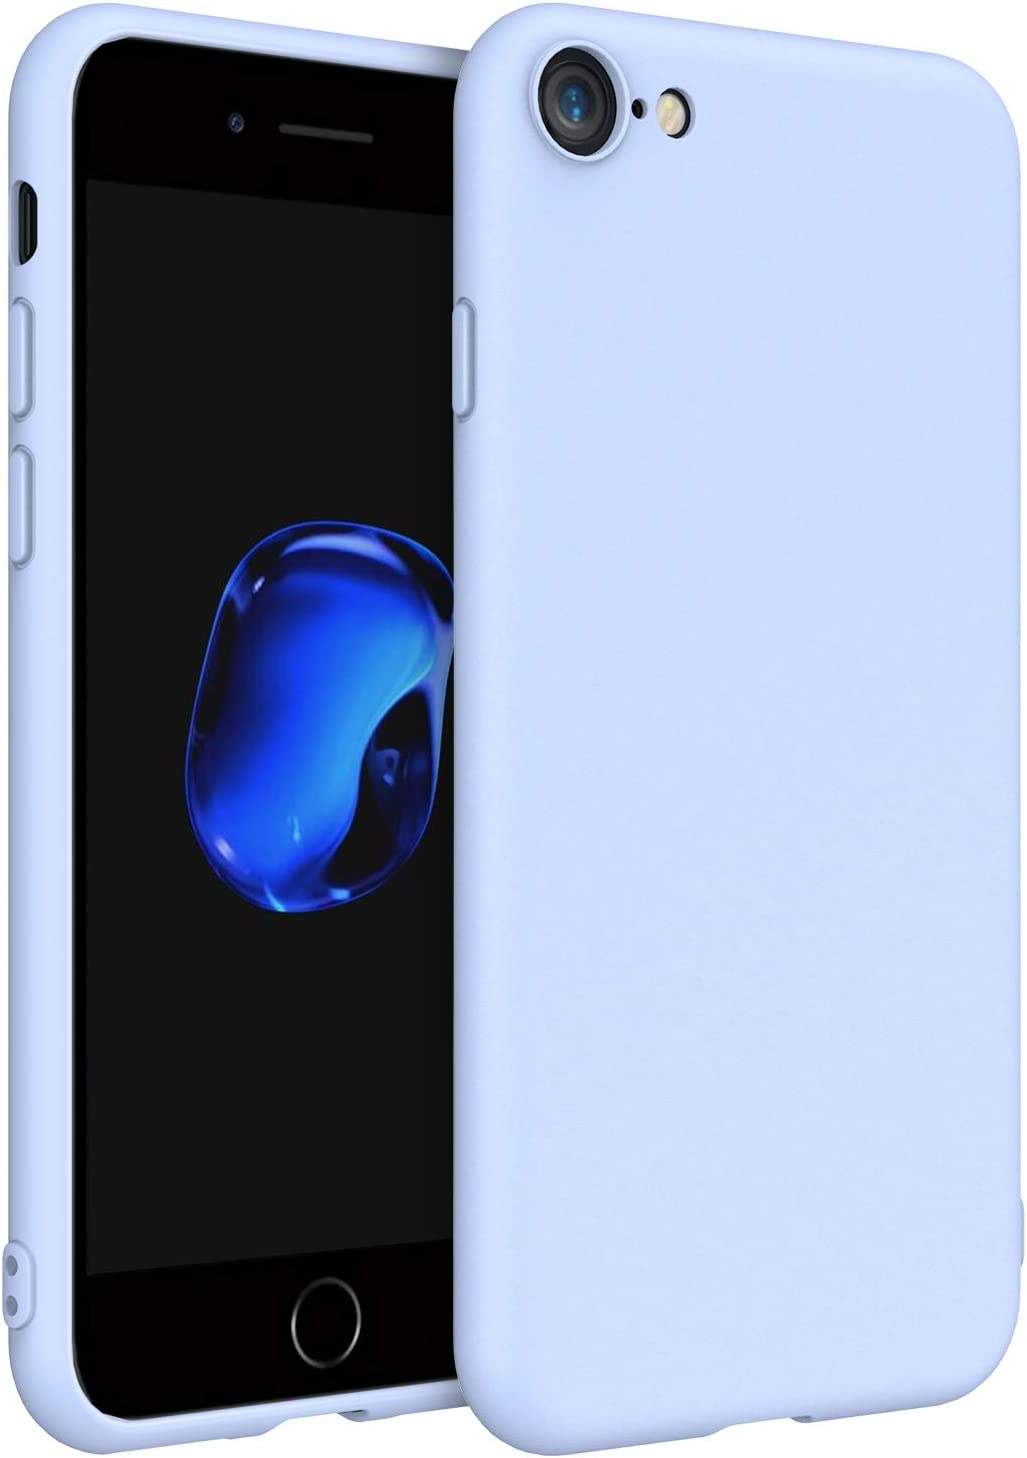 EasyAcc Case for iPhone SE 2020/ iPhone 7/iPhone 8, Thin Matte TPU Phone Cases Finish Profile Soft Back Protective Cover Compatible with iPhone 7/iPhone 8/iPhone SE 2020 - Blue